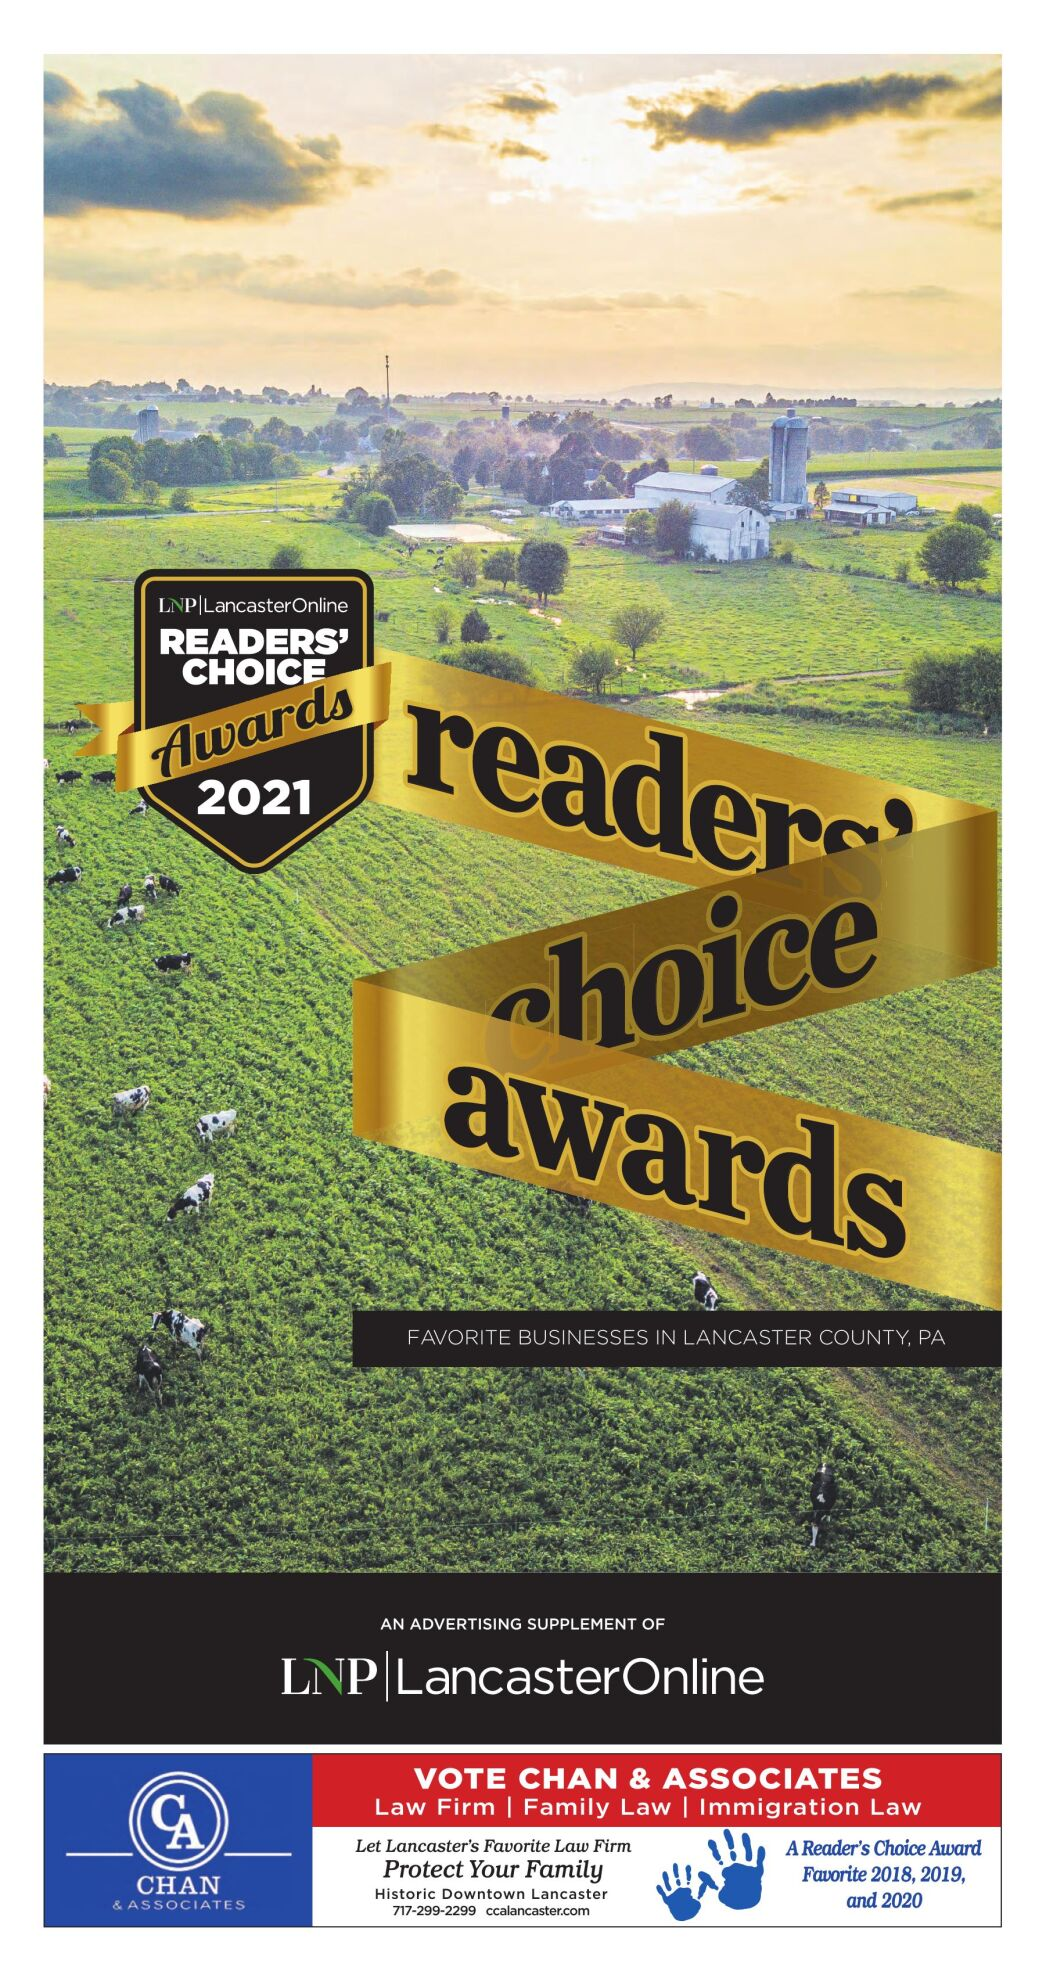 Readers' Choice Awards 2021 Preview